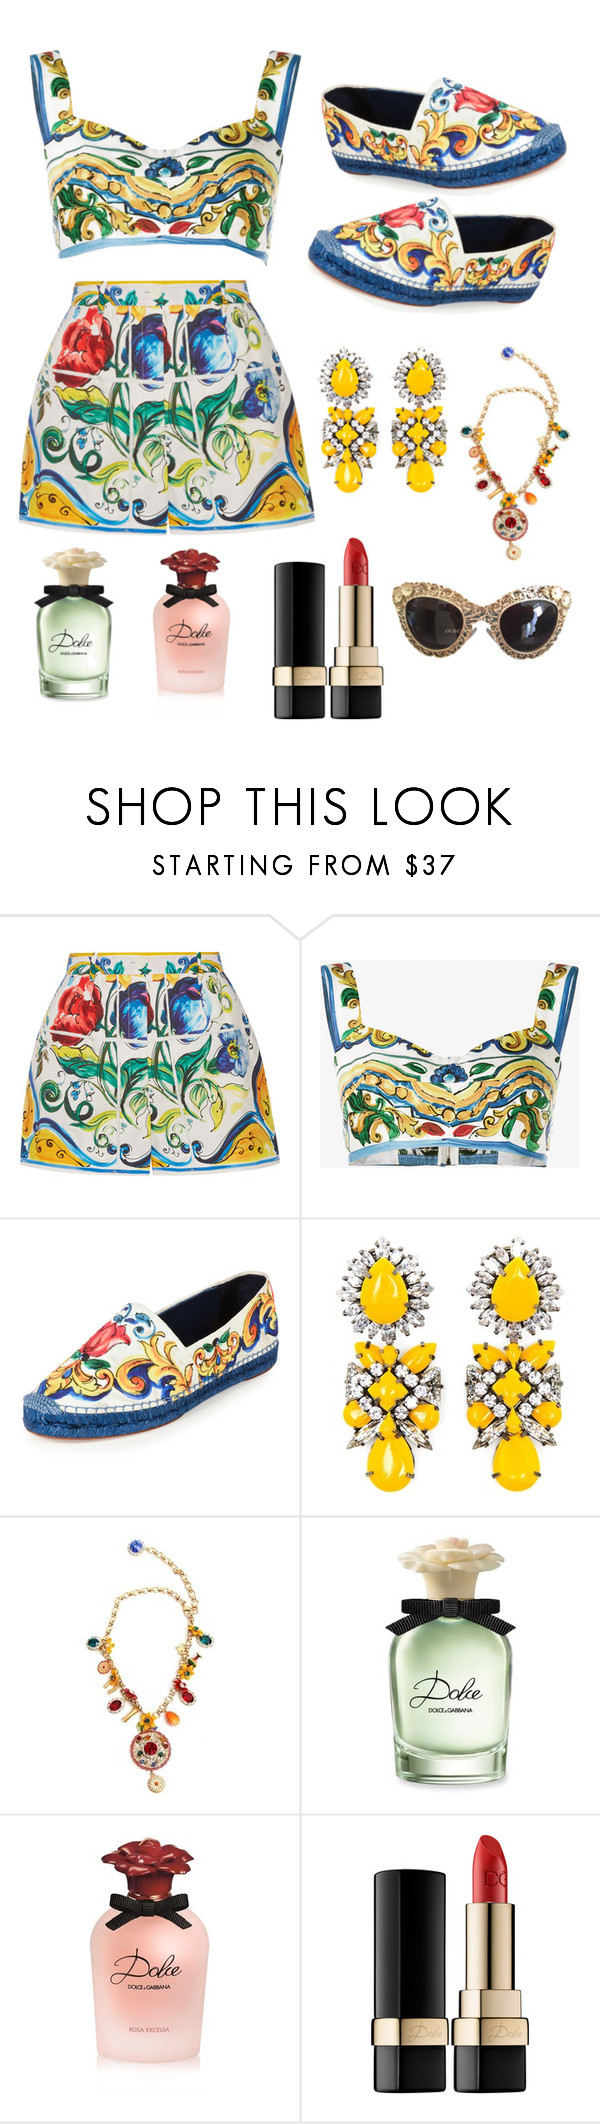 """""""Dolce and Gabbana"""" by thetrendymermaid ❤ liked on Polyvore featuring Dolce&Gabbana and Shourouk"""